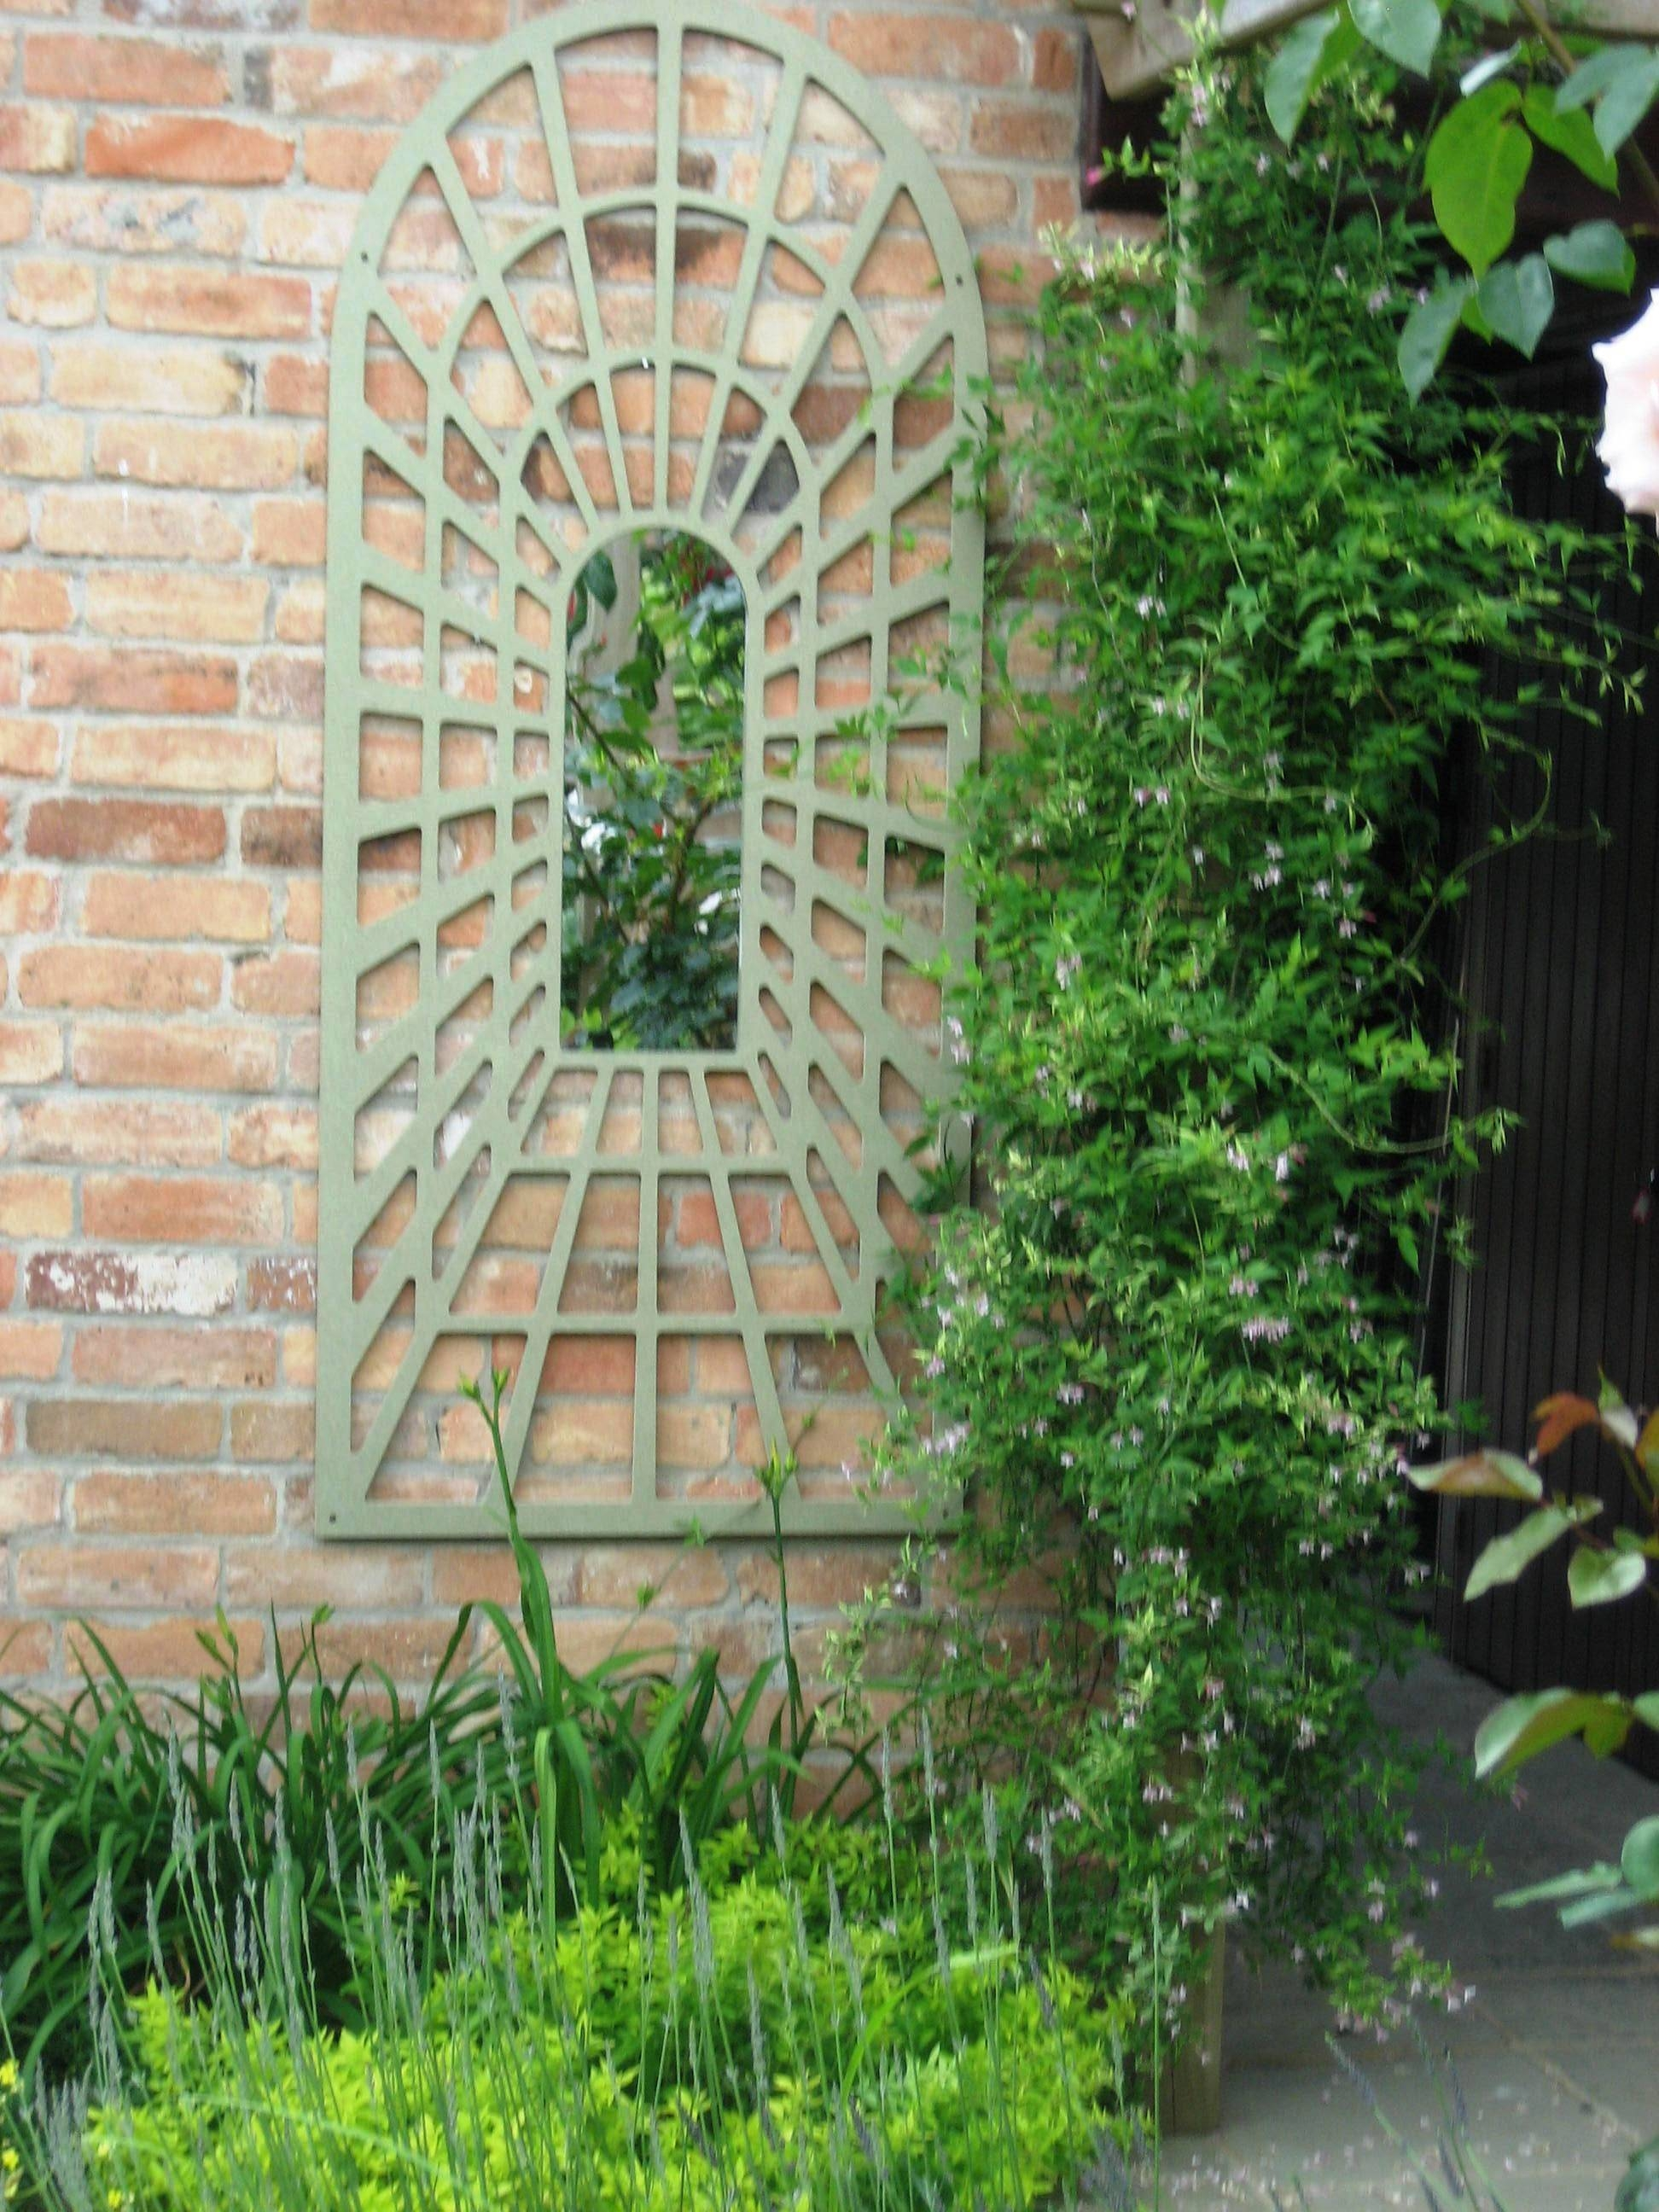 Garden Mirrors | Parallax Plastics intended for Large Garden Mirrors (Image 12 of 15)